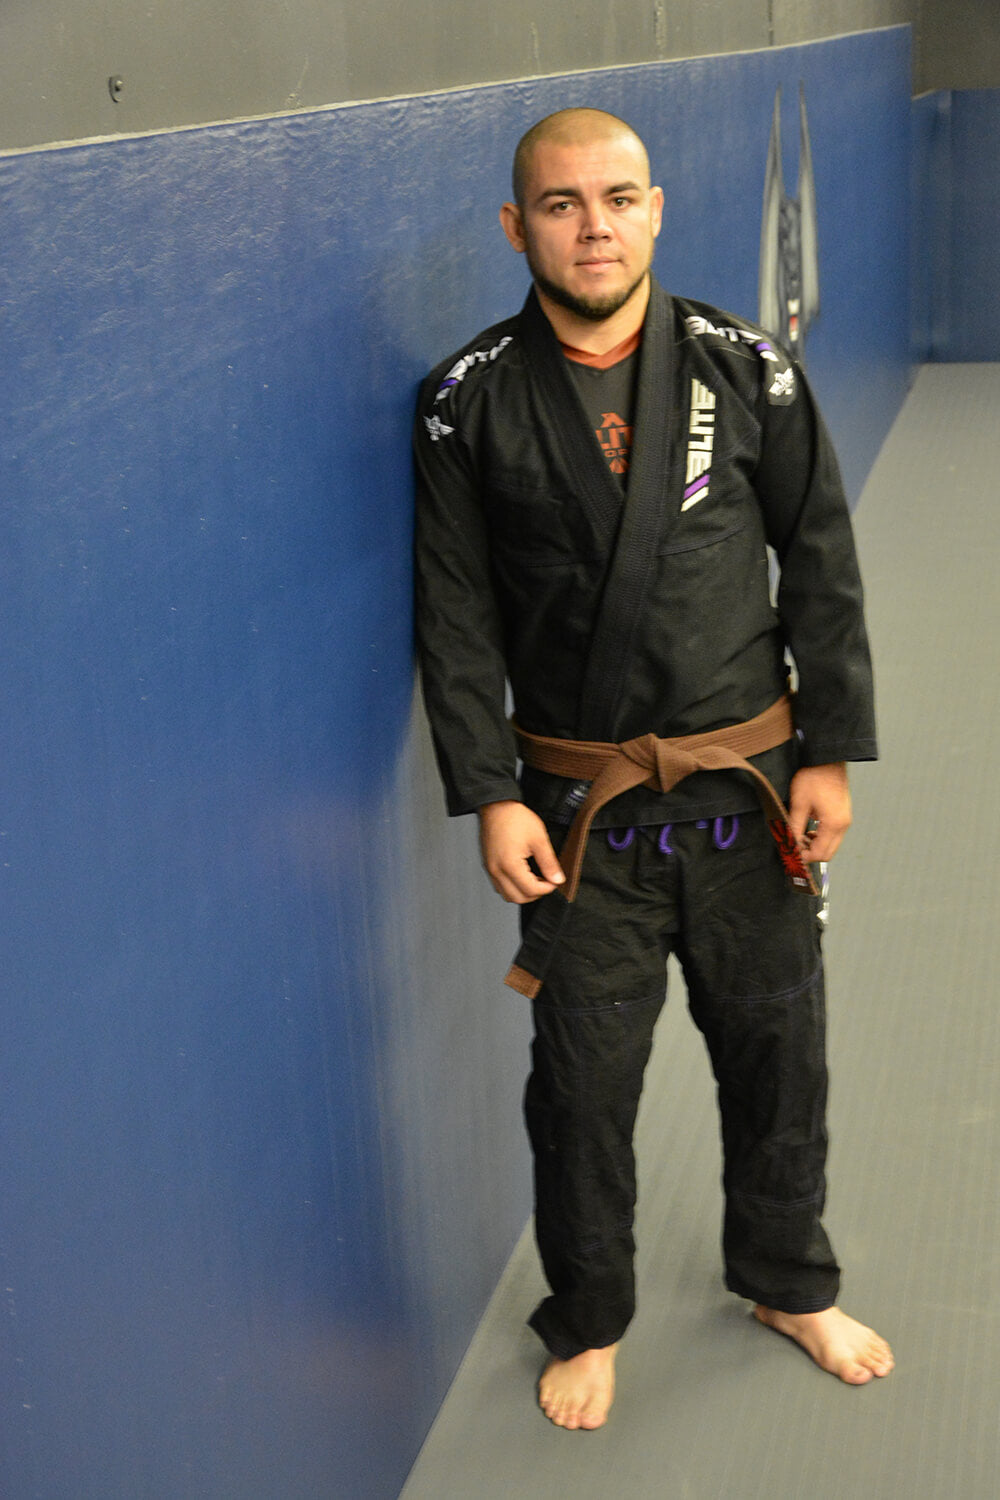 Elite-sports-Team-Elite-NO GI-Daniel-Roy-image1.jpeg